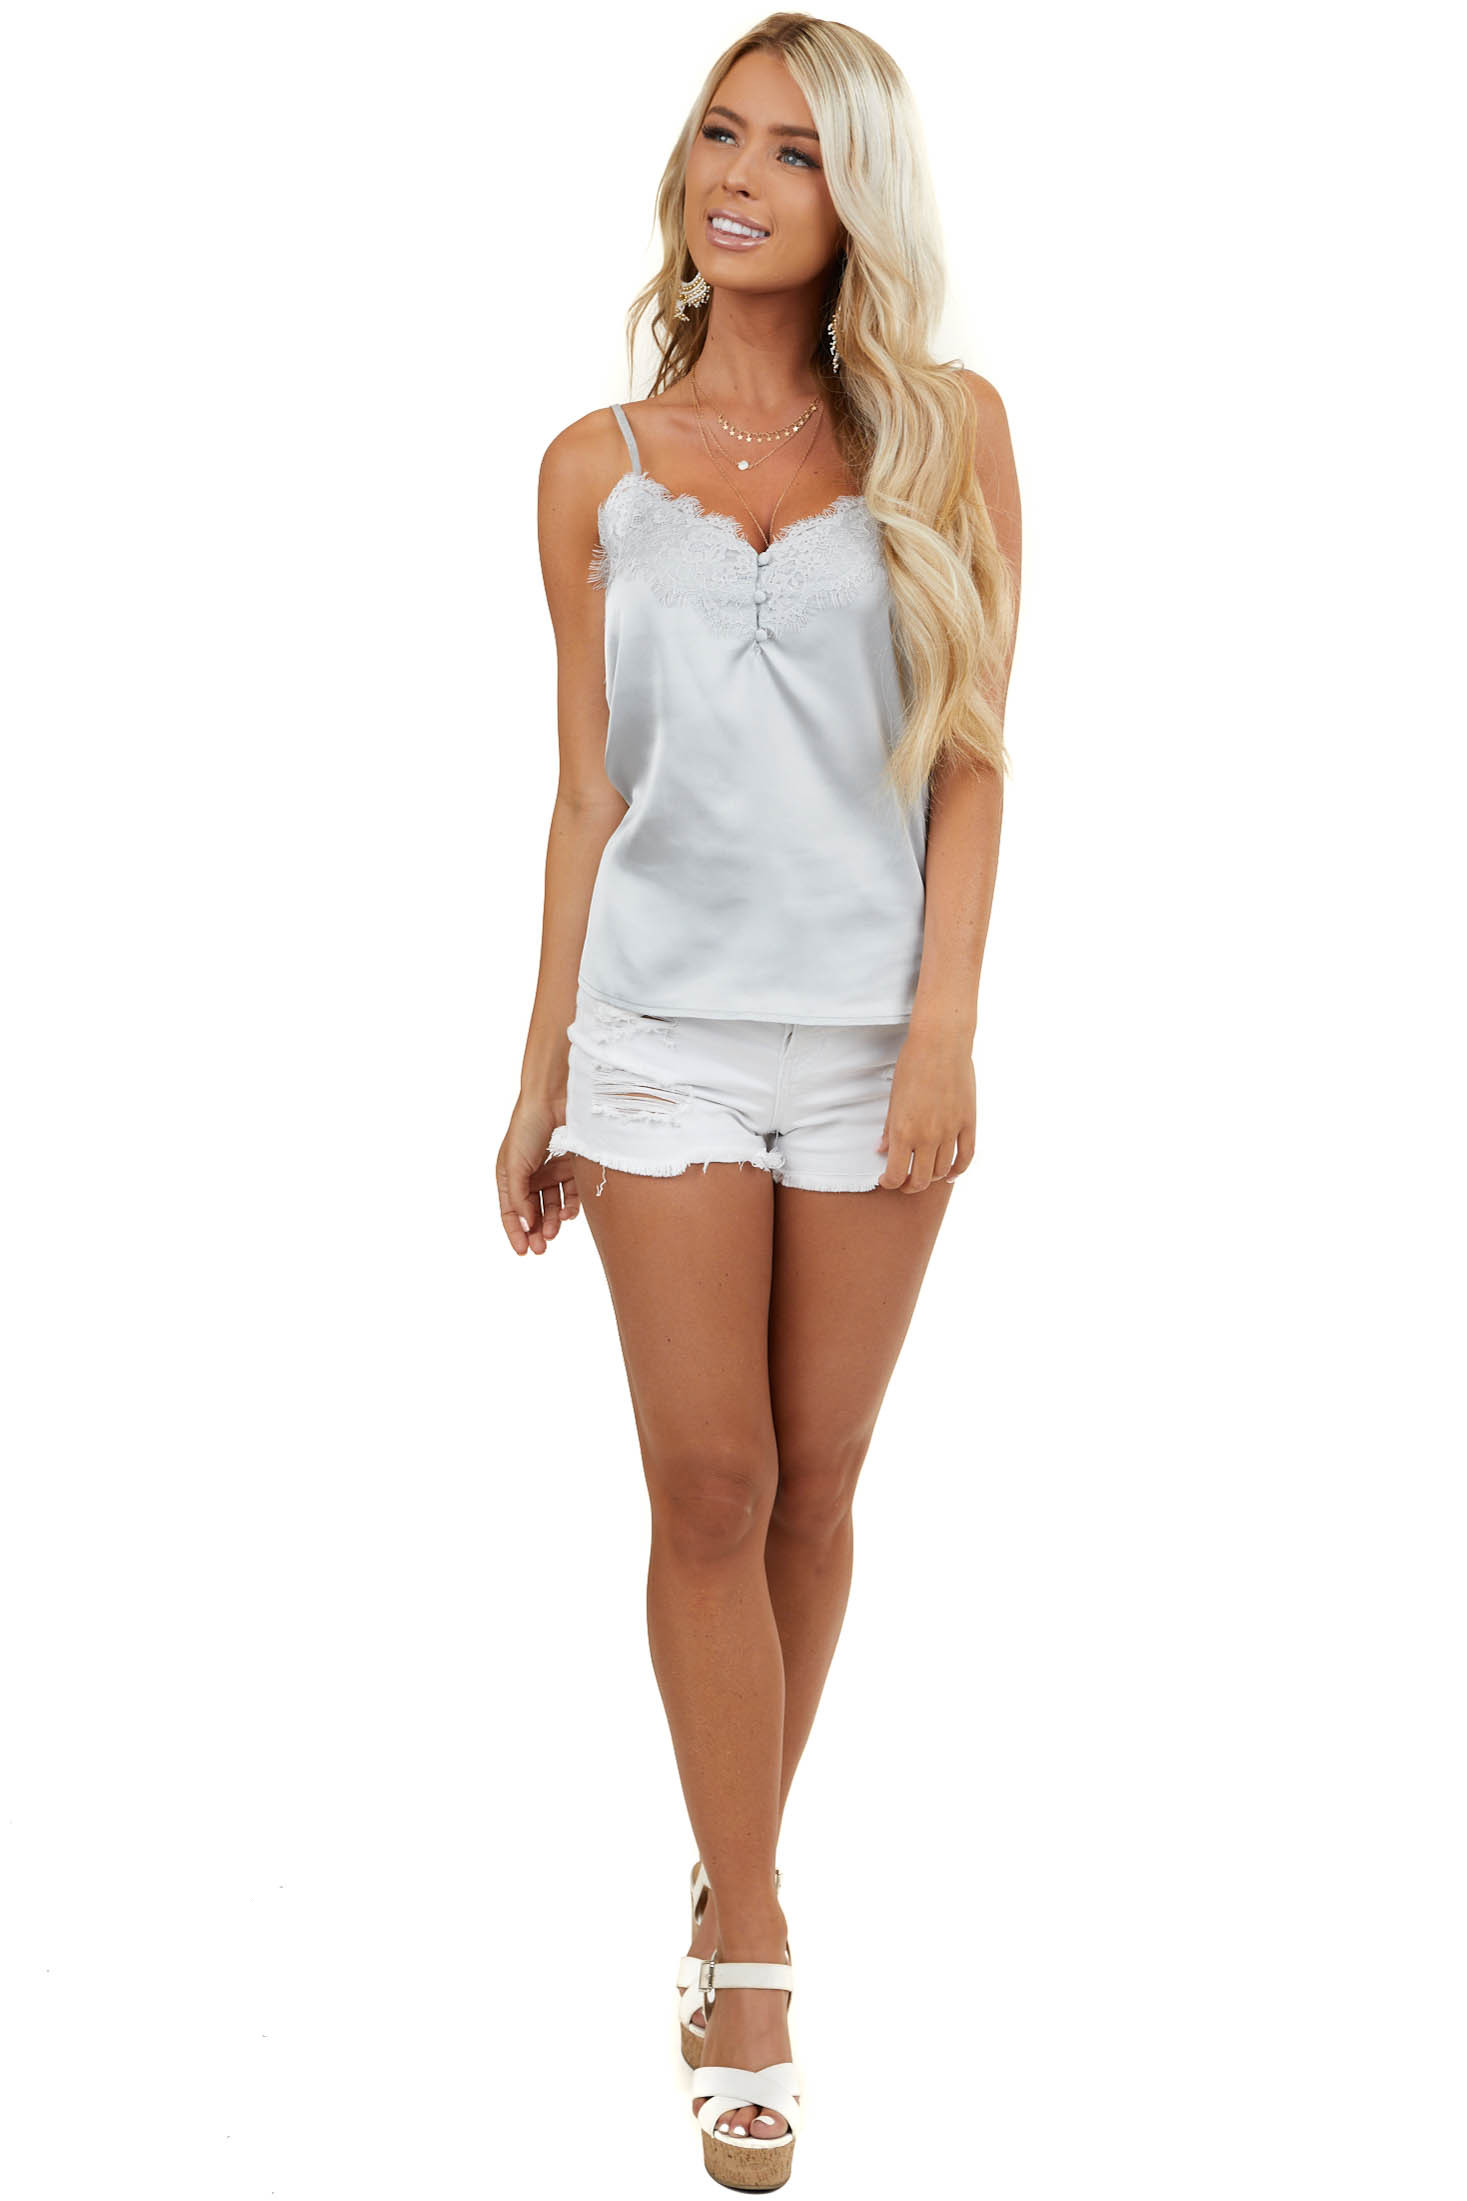 Dove Grey Silky Tank Top with Button and Lace Details